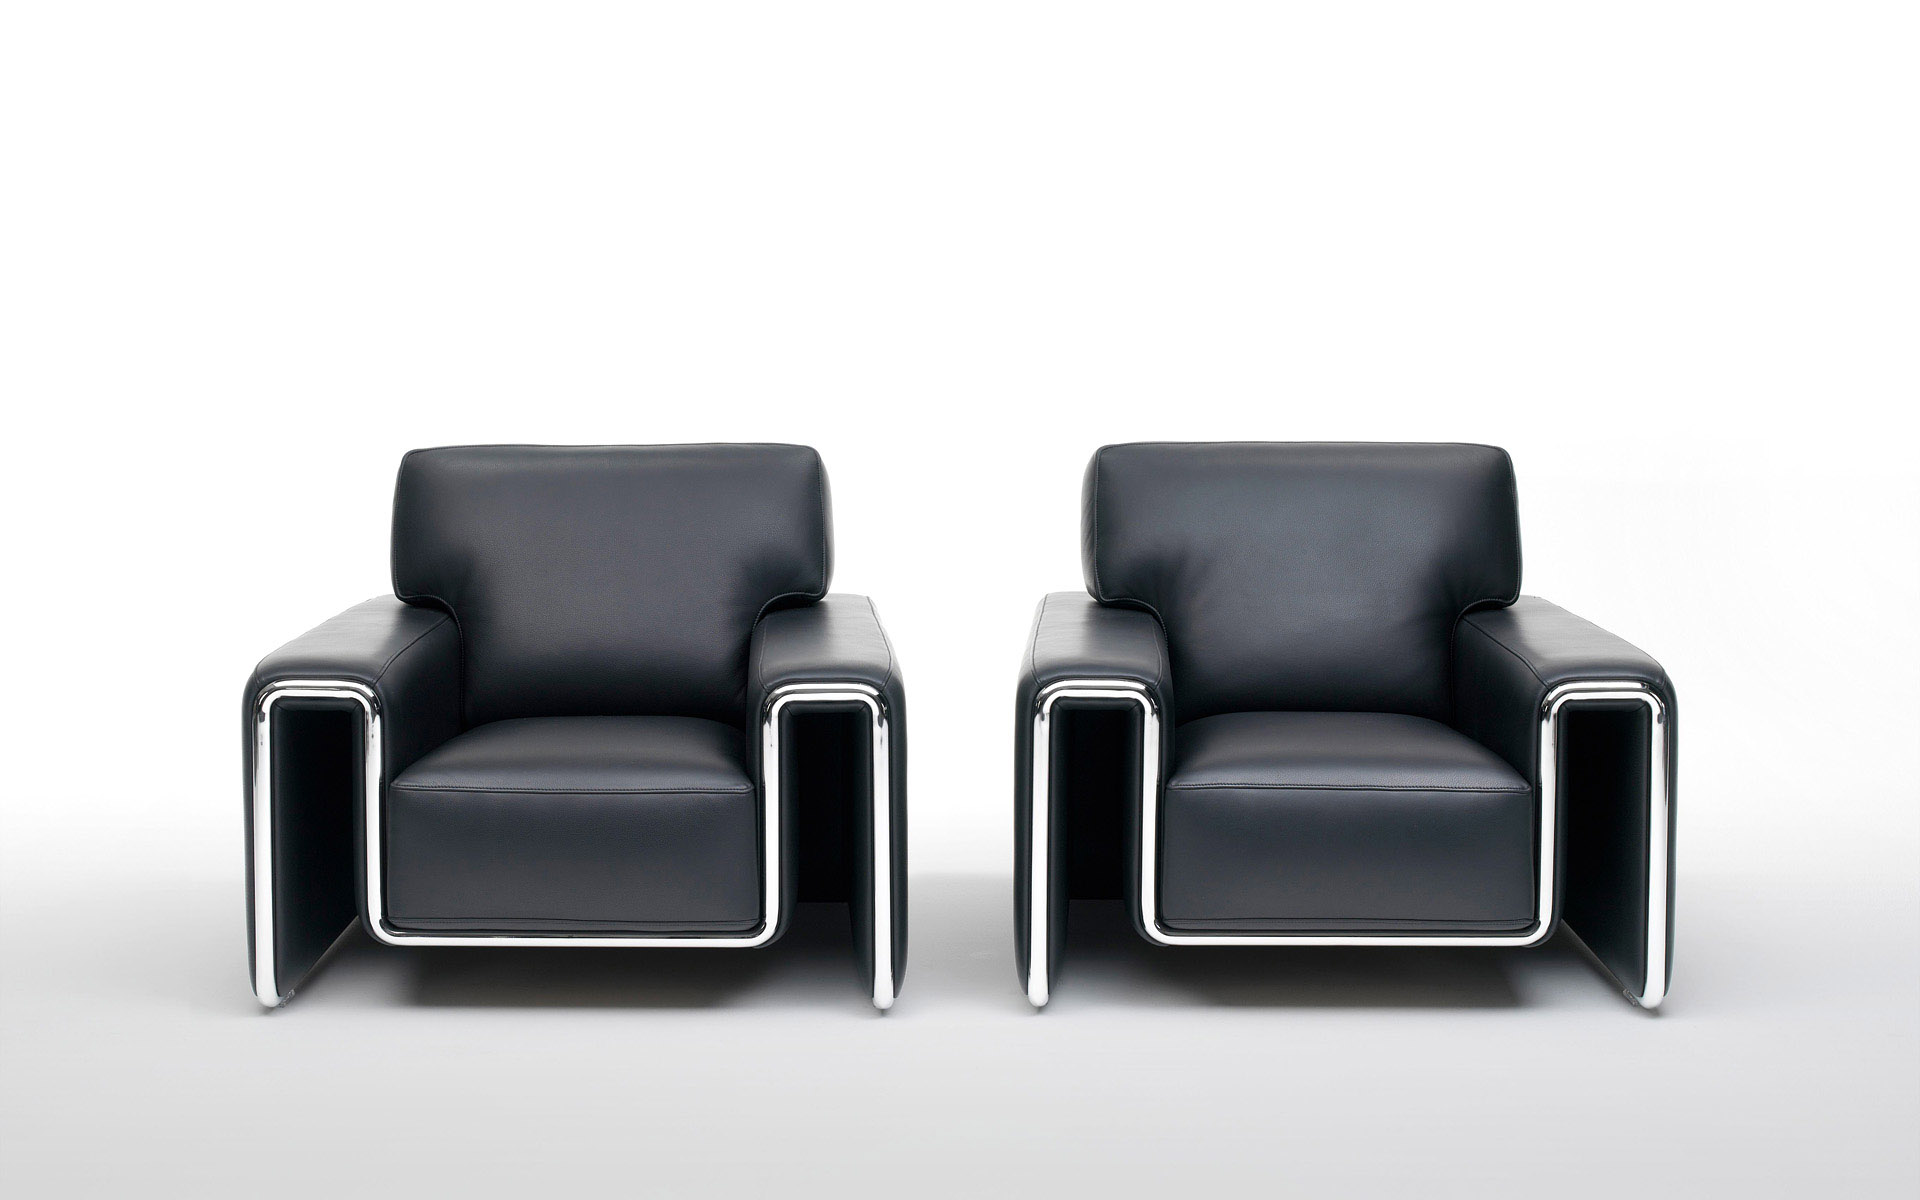 modern black chairs wallpaper 63895